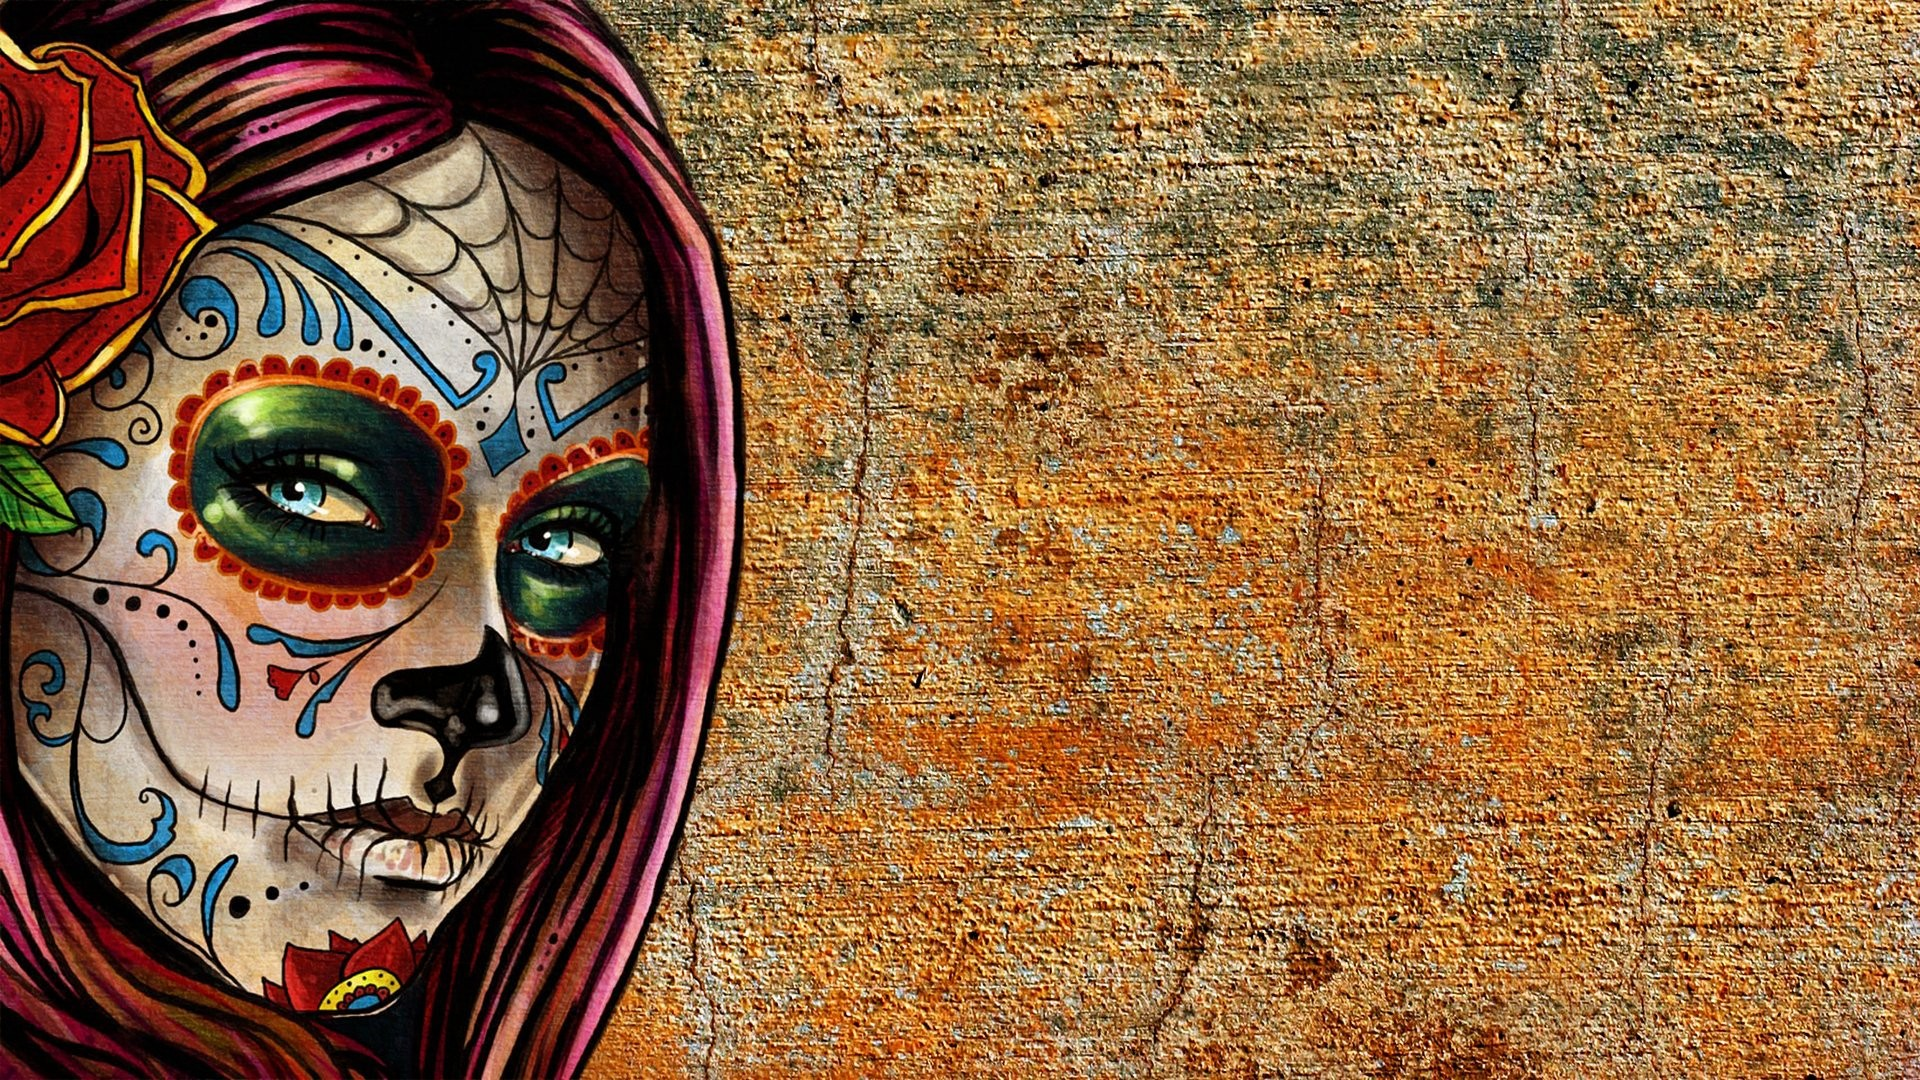 Sugar Skull Wallpaper 1 Download Free Cool Full HD Wallpapers For